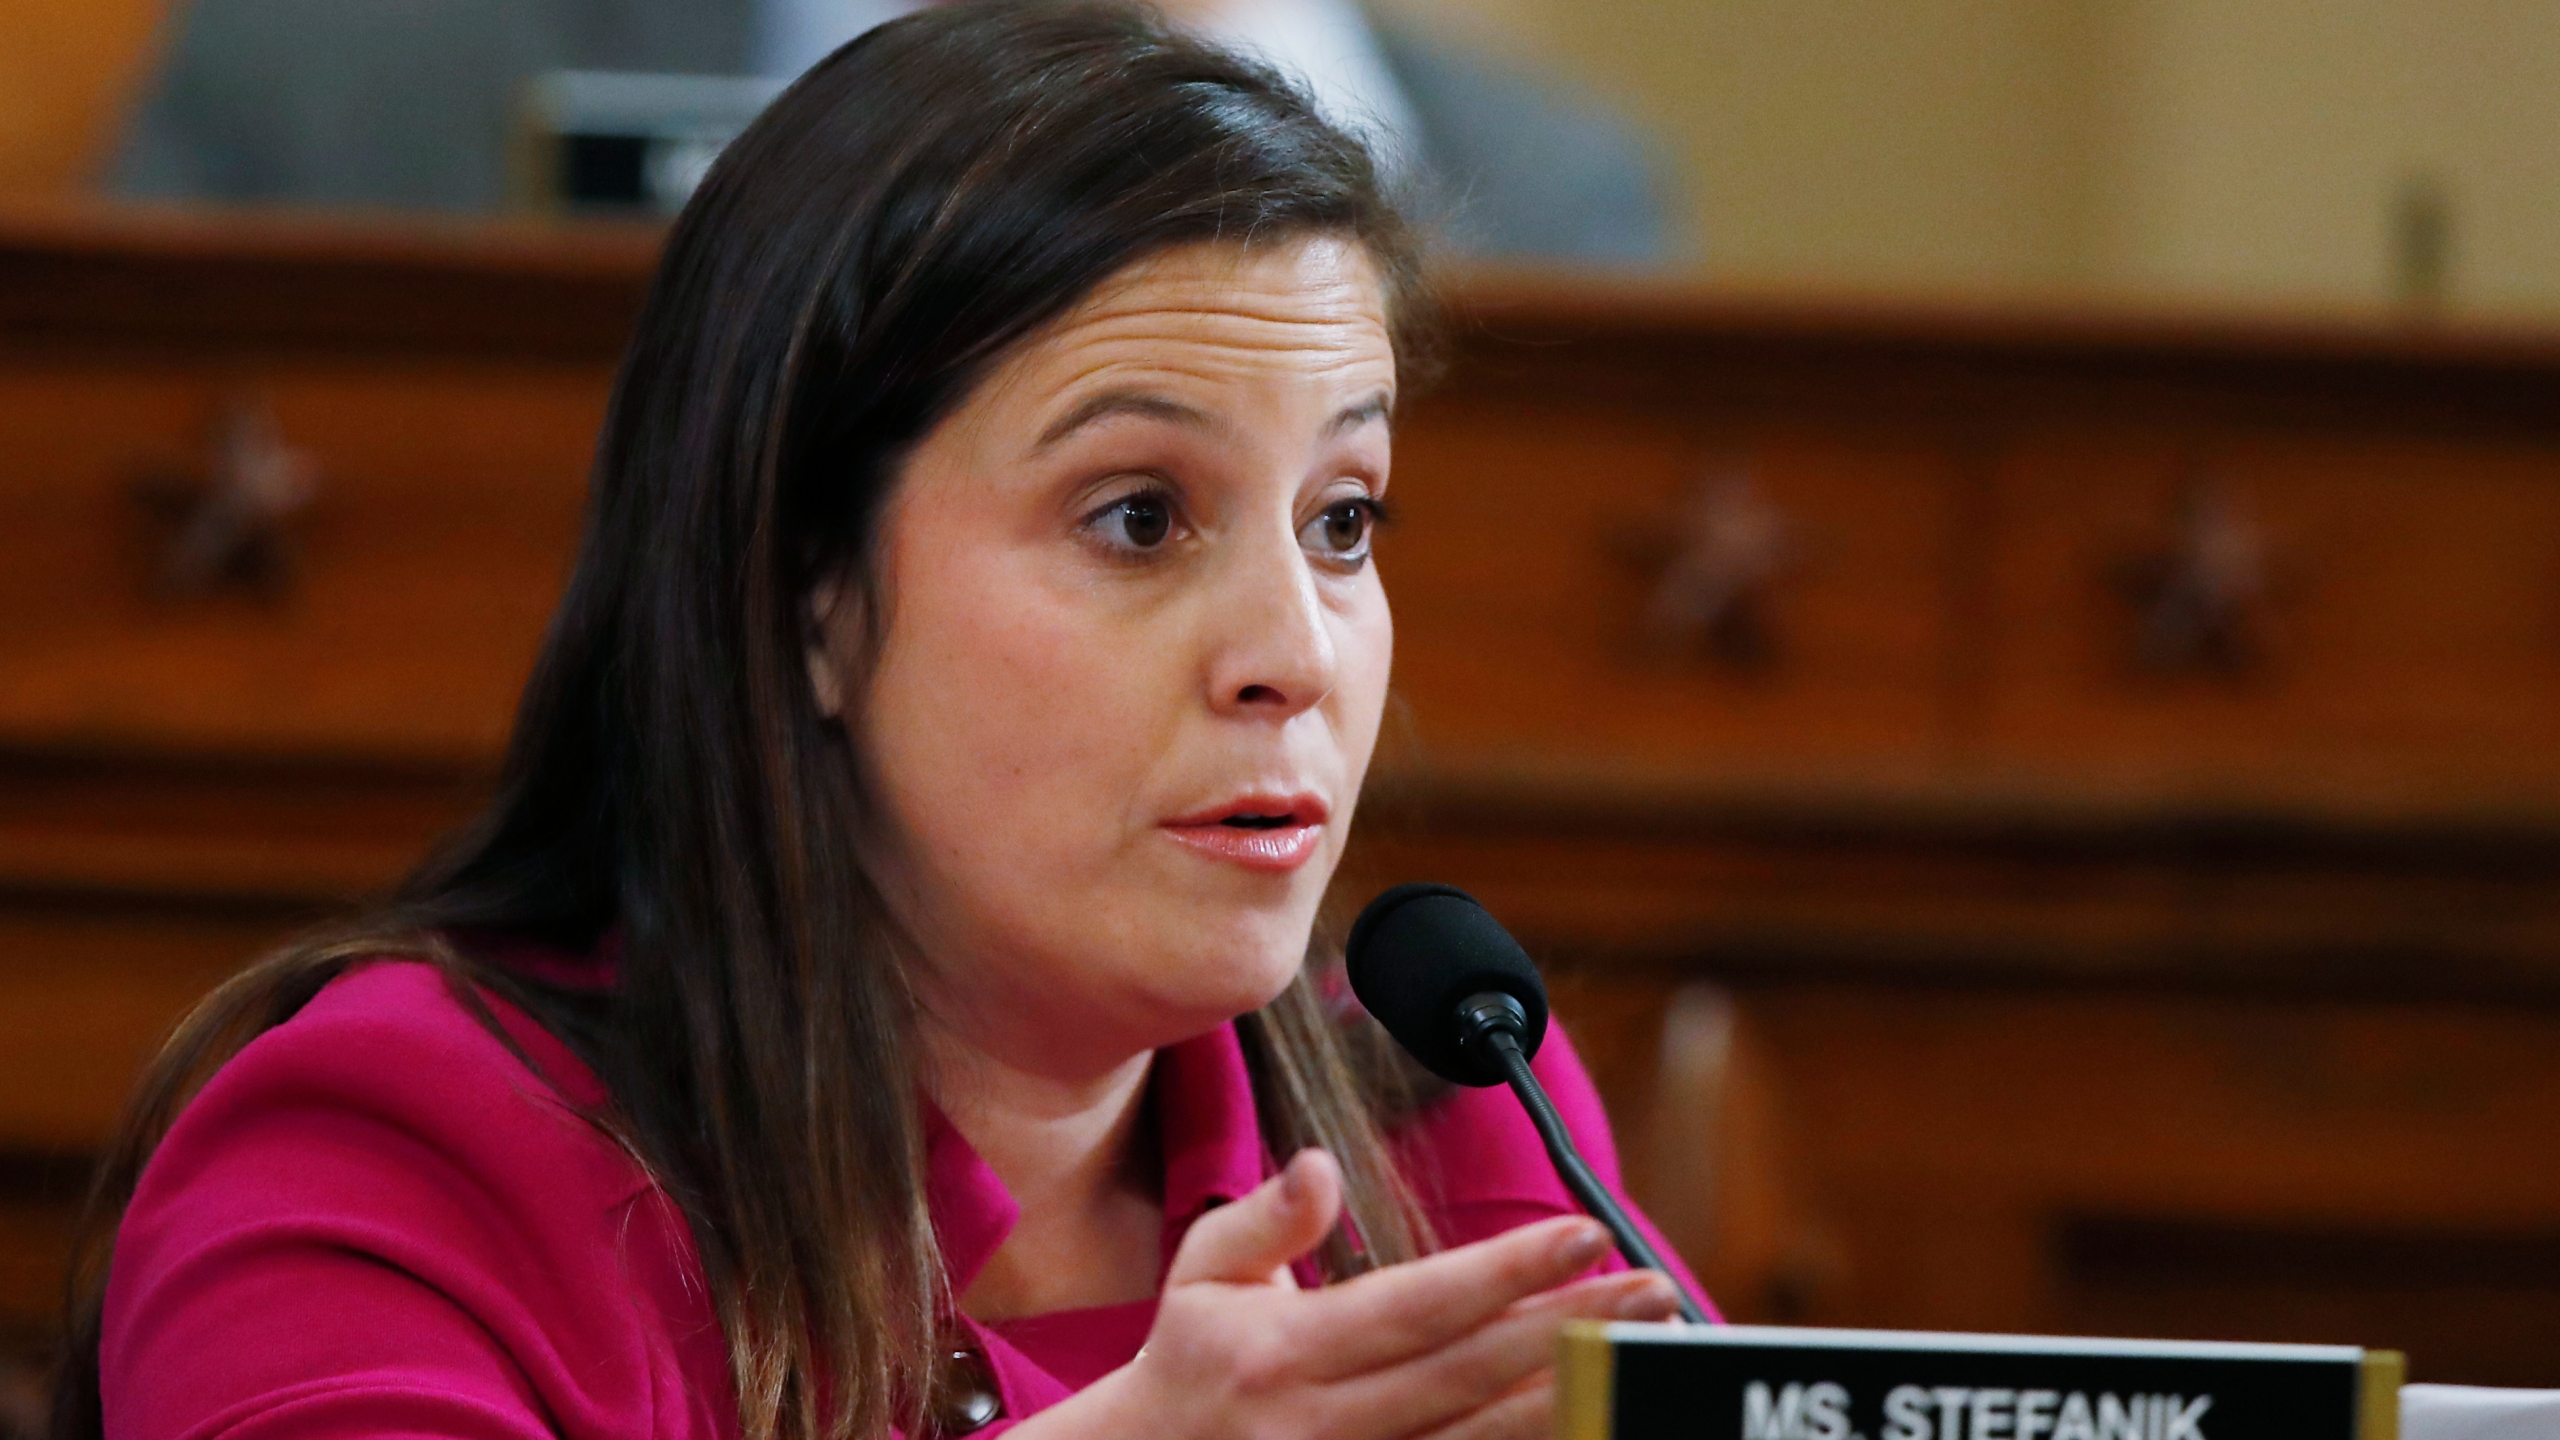 GOP woman gets outsized role at impeachment hearing - KGET 17